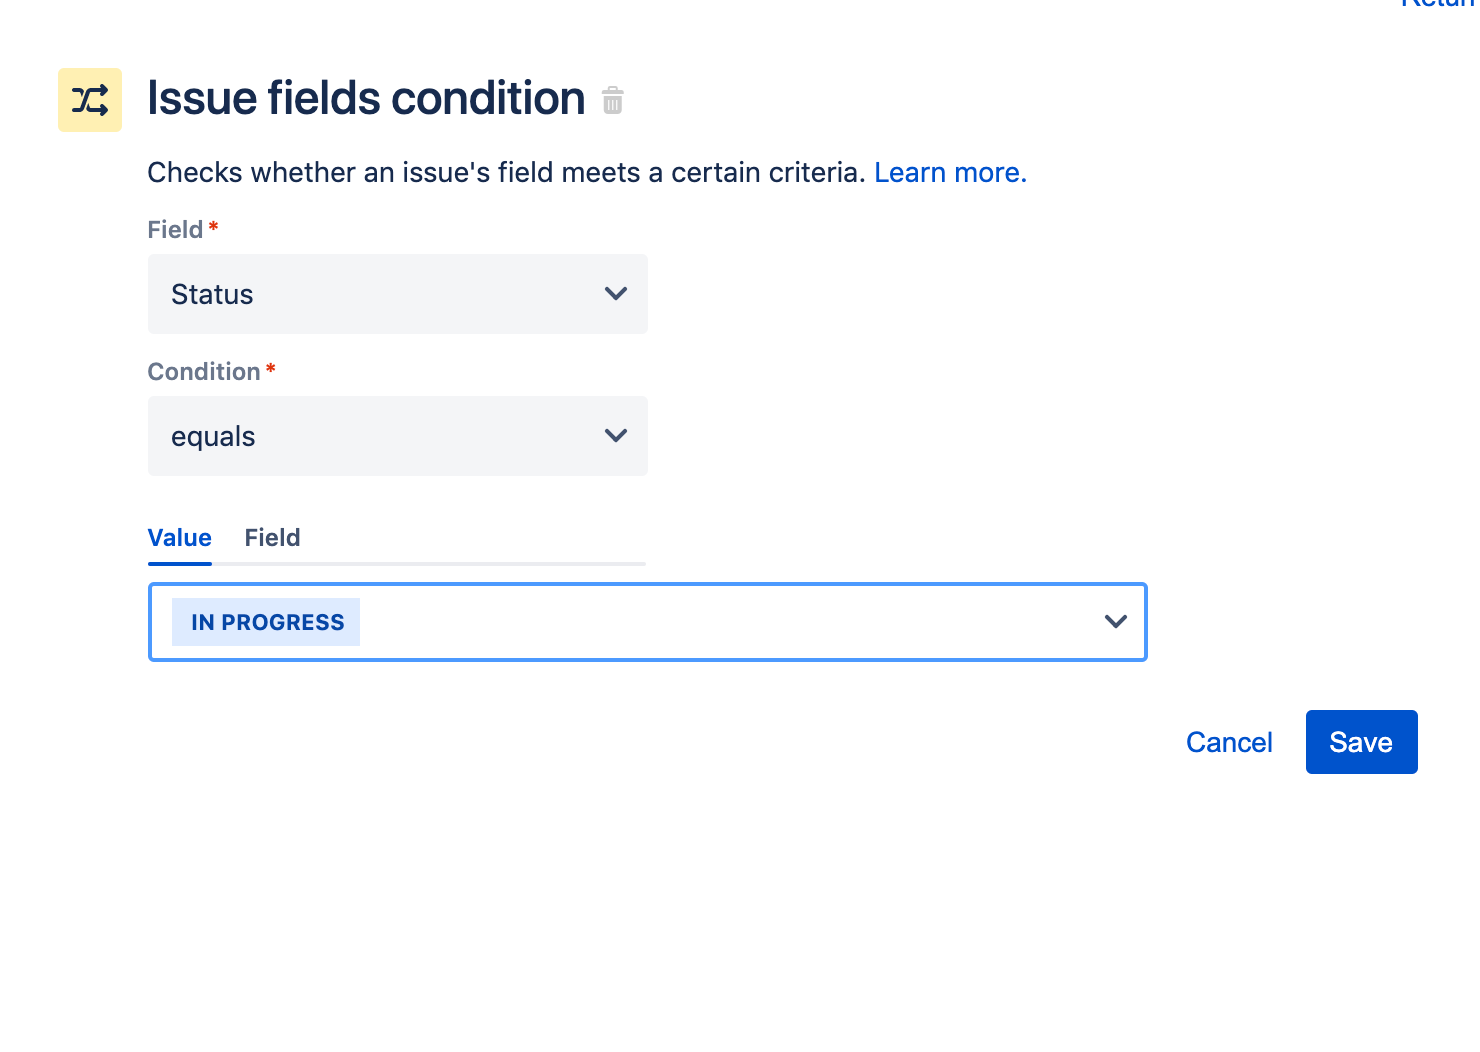 Screenshot of issue fields condition